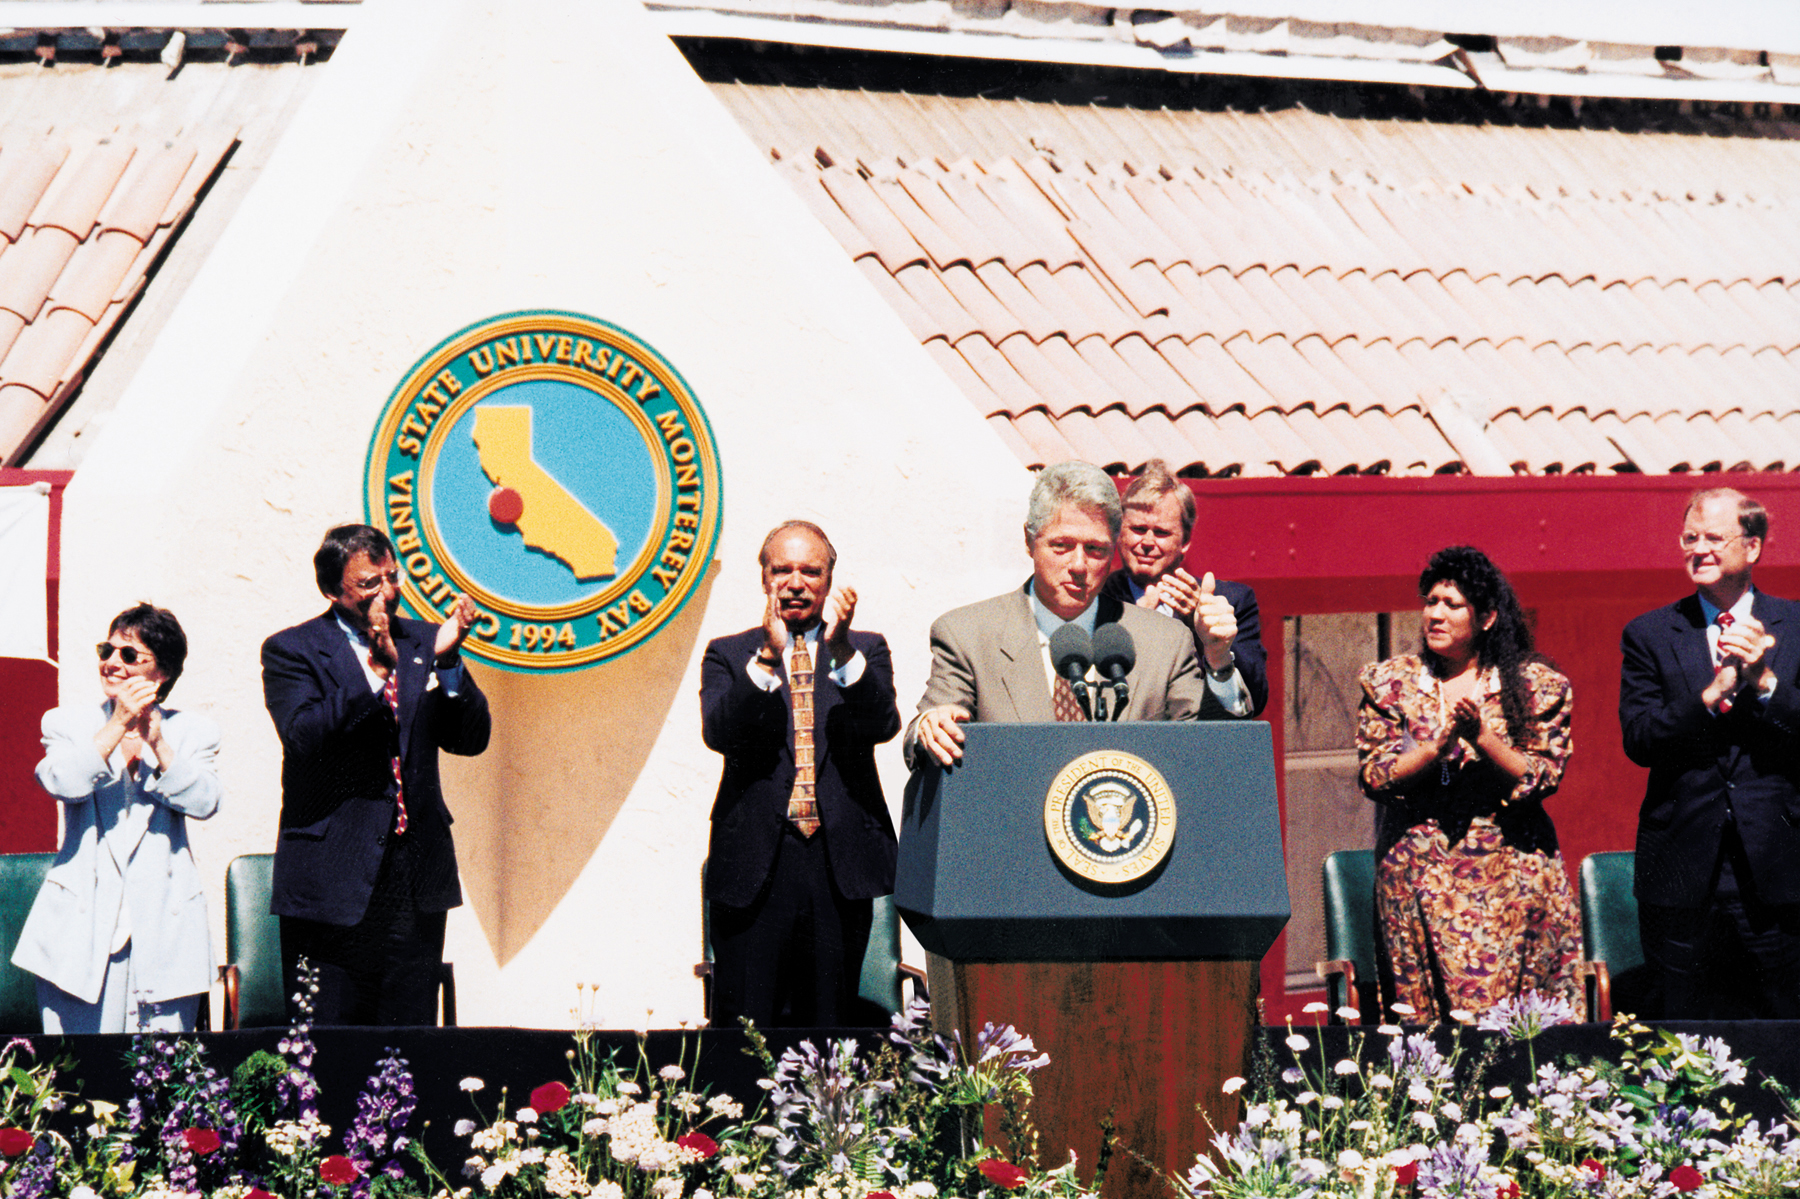 Bill Clinton at CSUMB's dedication ceremony in 1995